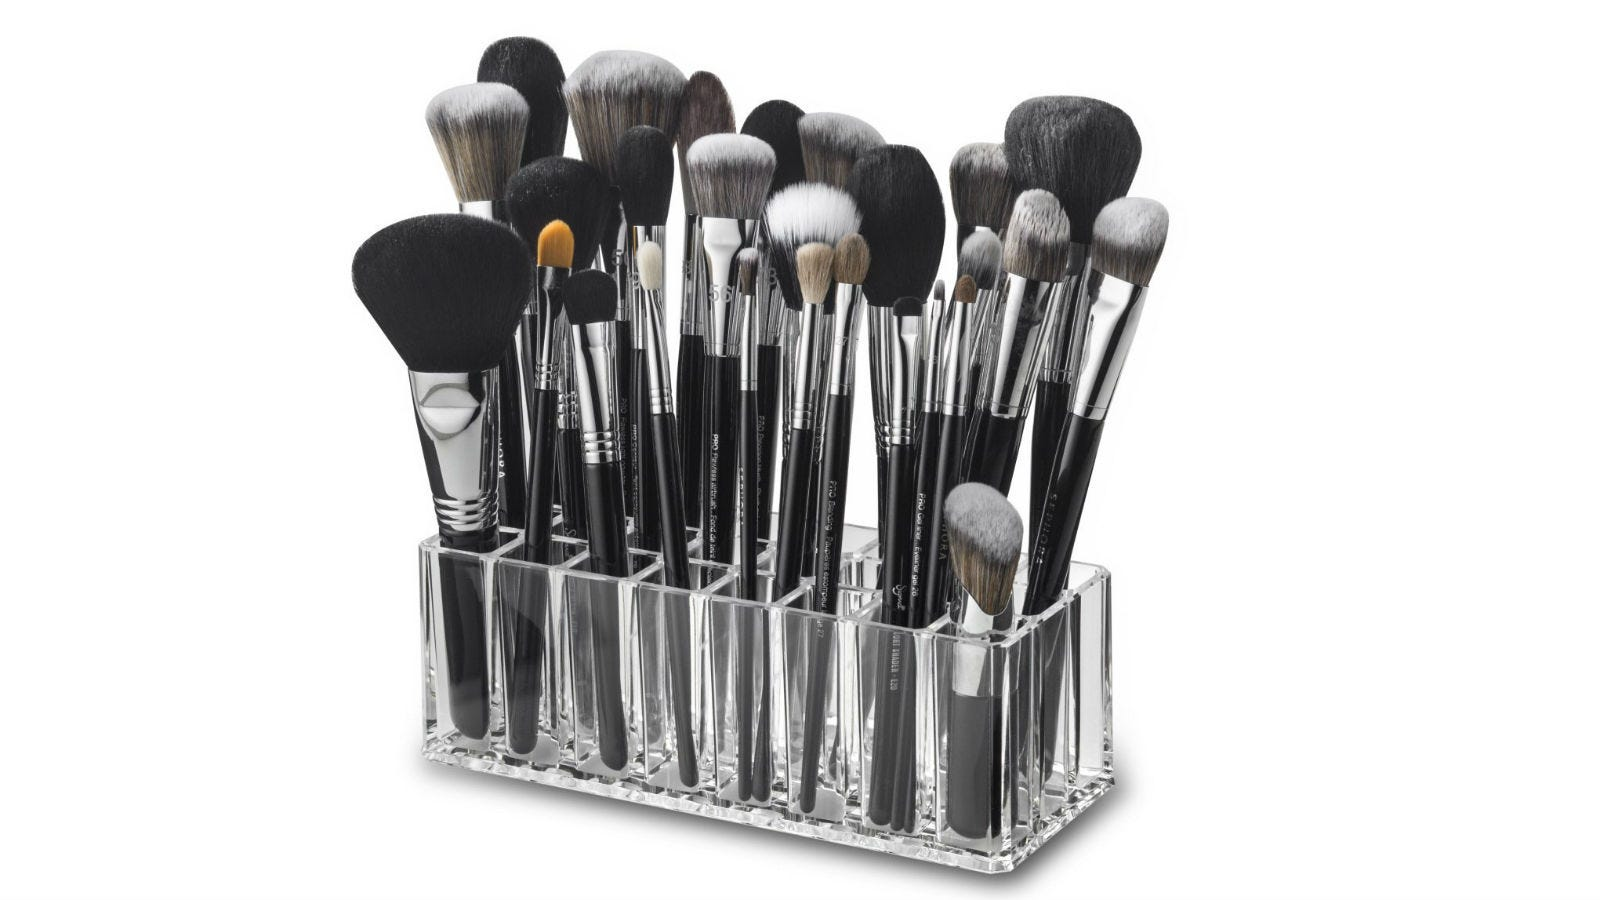 The byAlegory Acrylic Makeup Brush Organizer holding an array of brushes in all shapes and sizes.